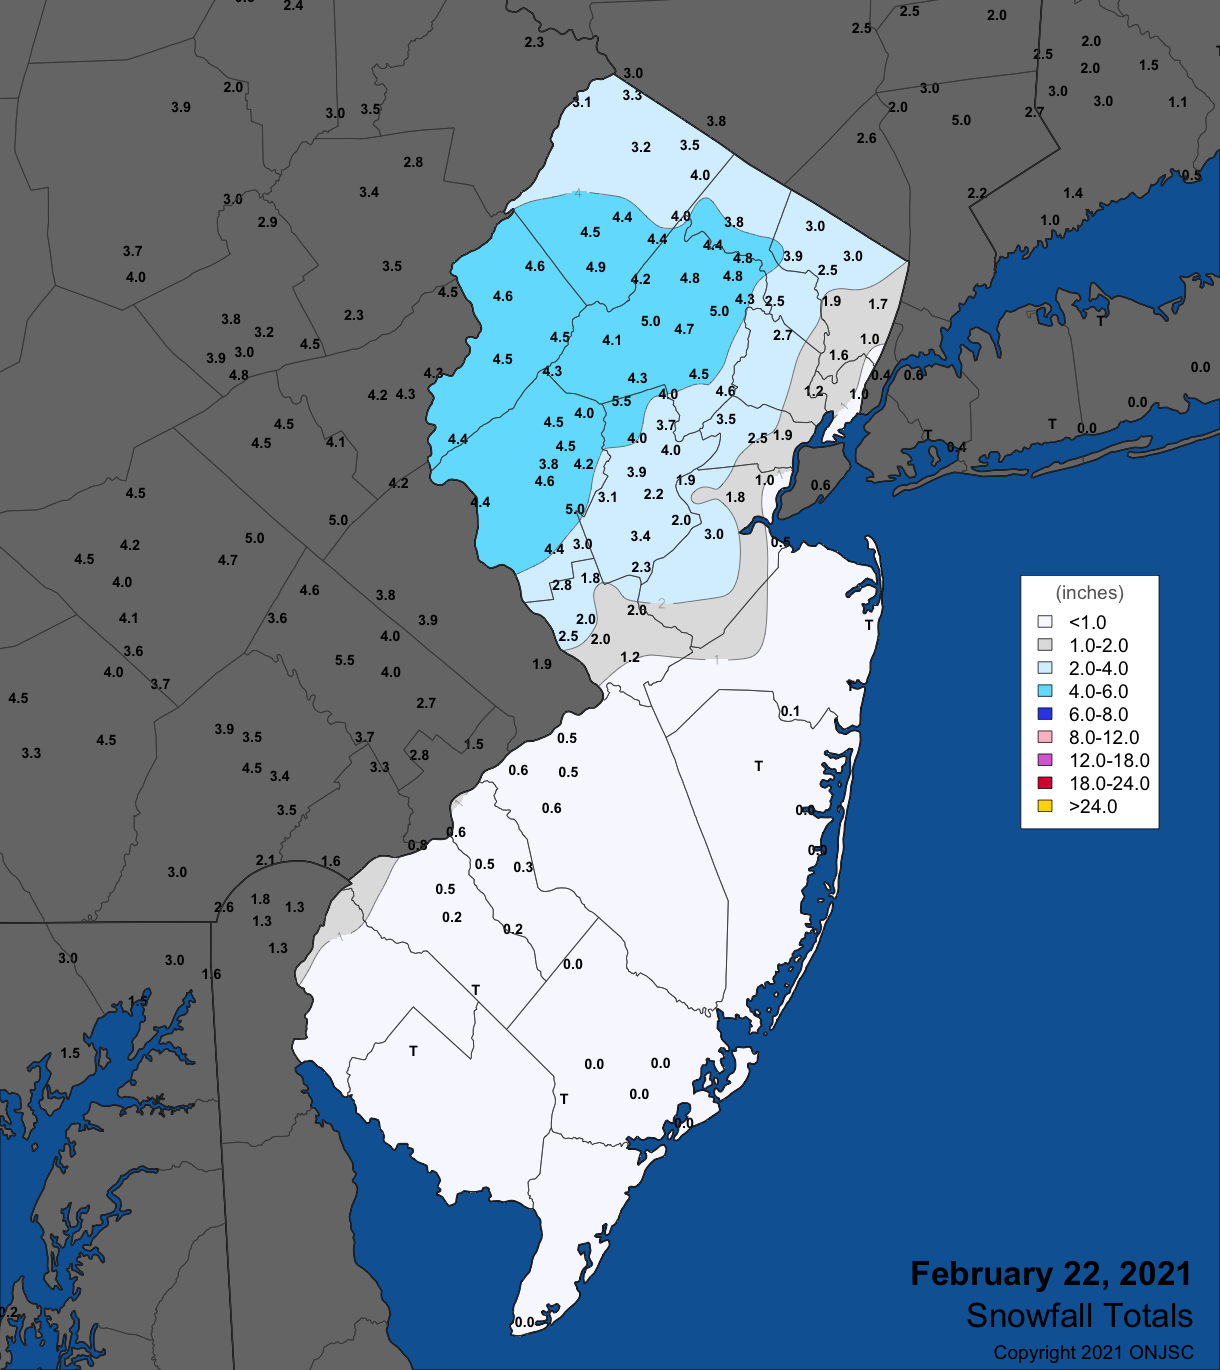 Snowfall map from the February 22nd winter storm